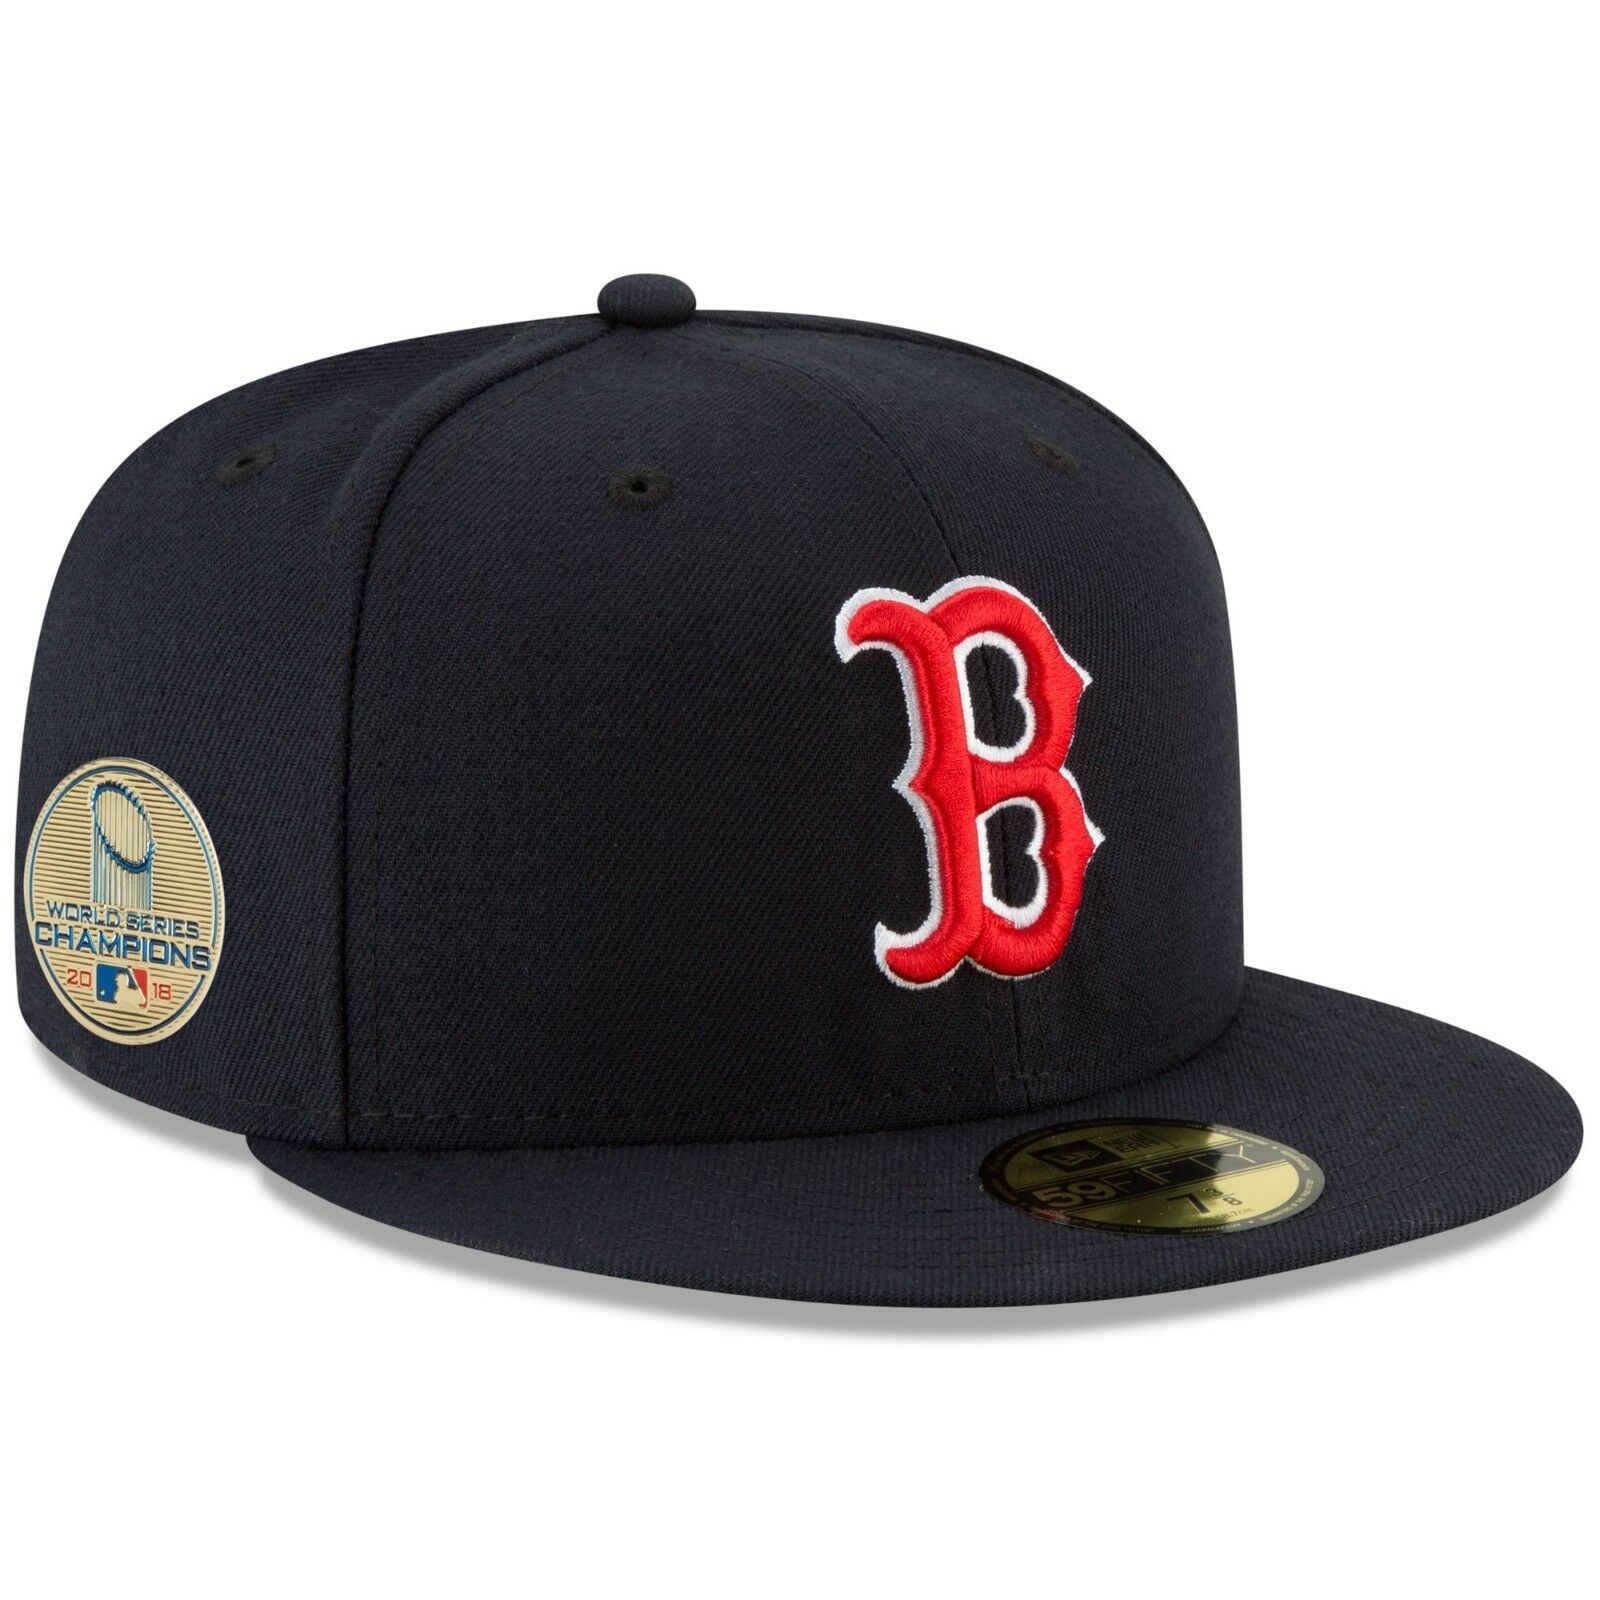 Details about Boston Red Sox New Era 2018 World Series Champions Side Patch  59FIFTY Fitted Hat 76f3f6525a5